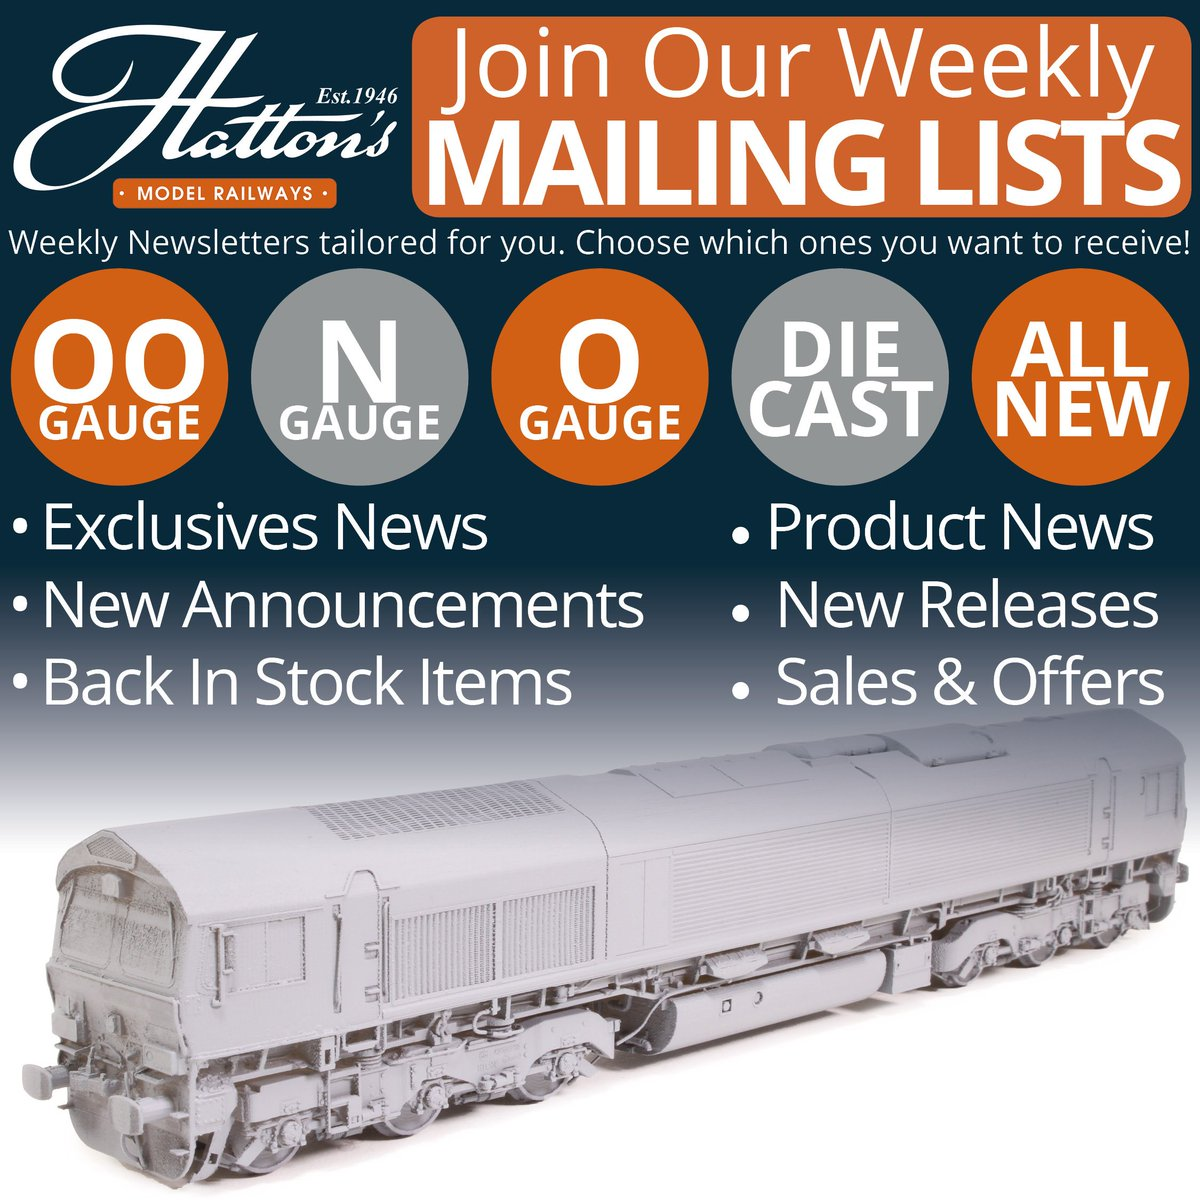 54064ff6d1c Choose which lists are relevant to you and get weekly emails that showcase  news